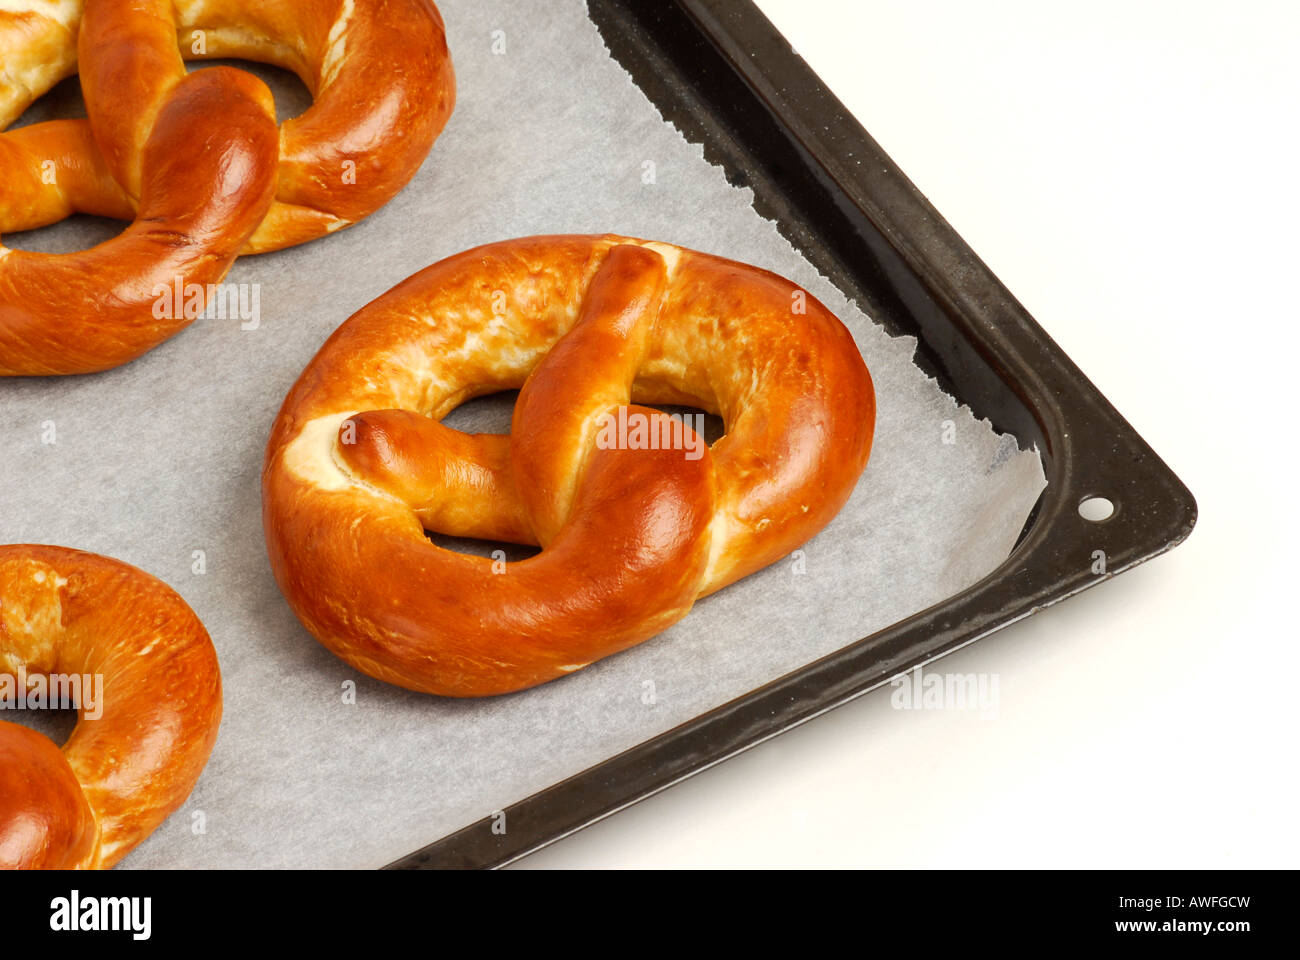 Pretzels on a baking sheet - Stock Image